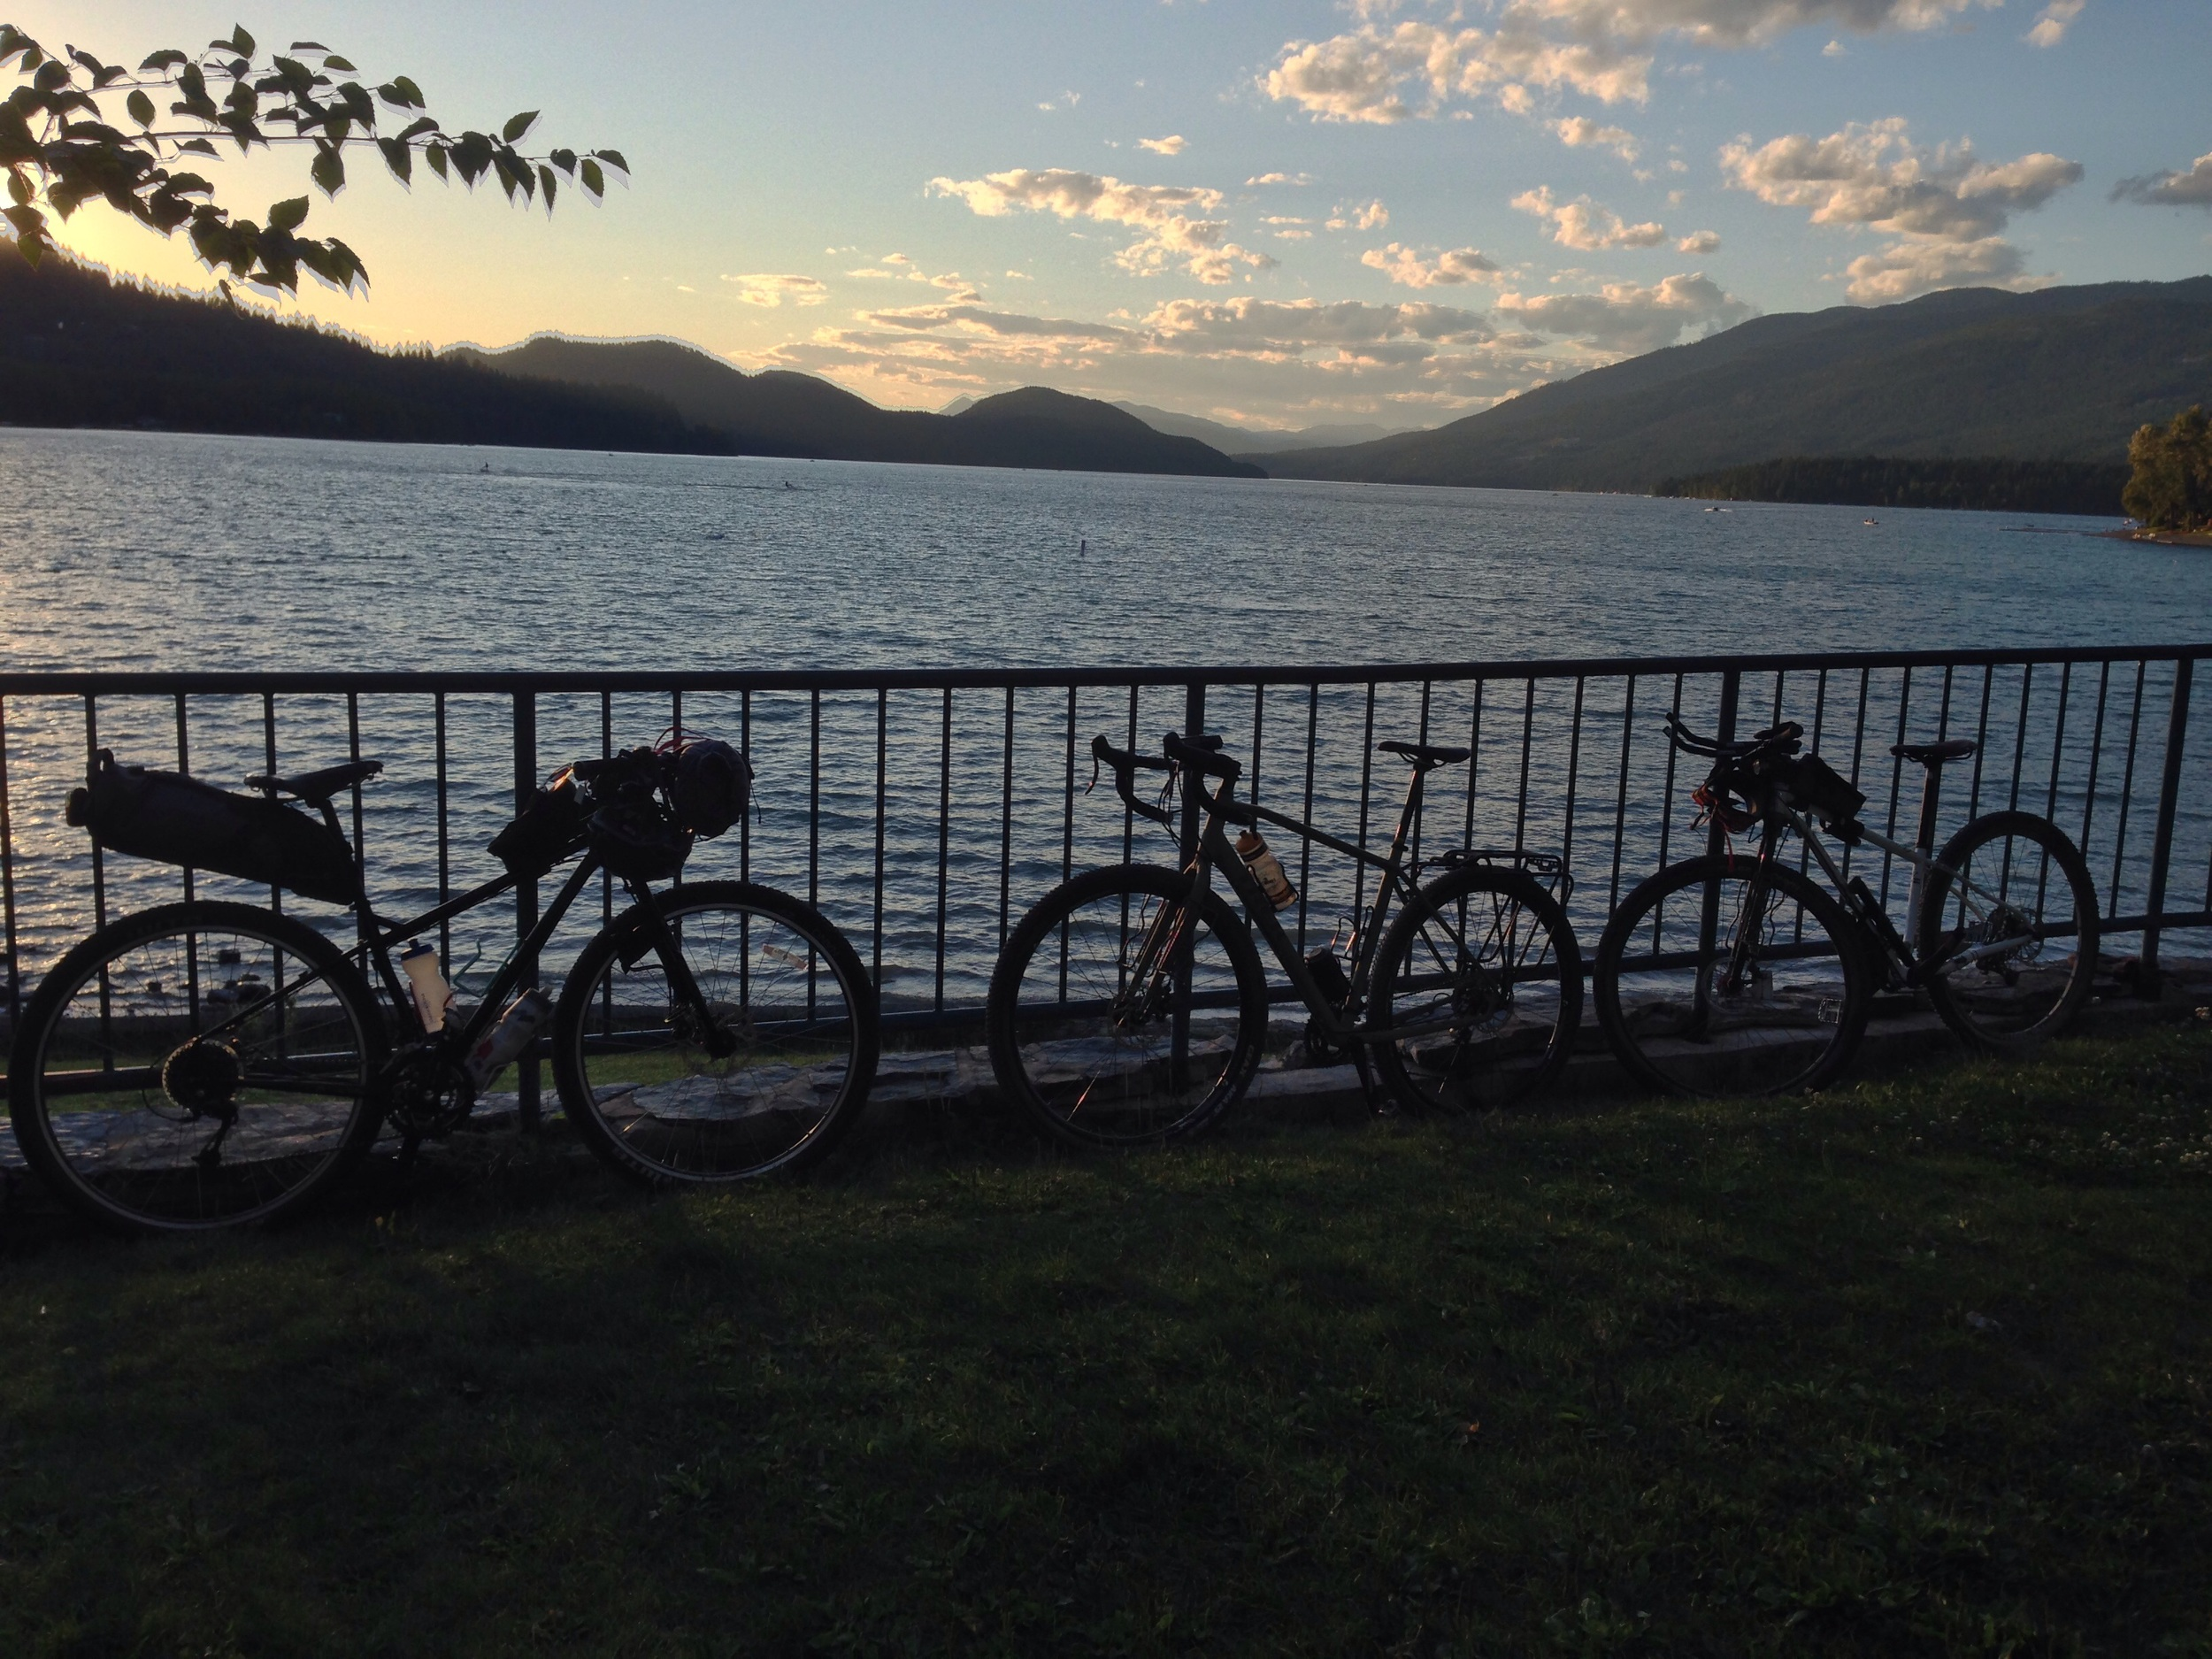 Bikes stand waiting while we sipped beers by Whitefish lake